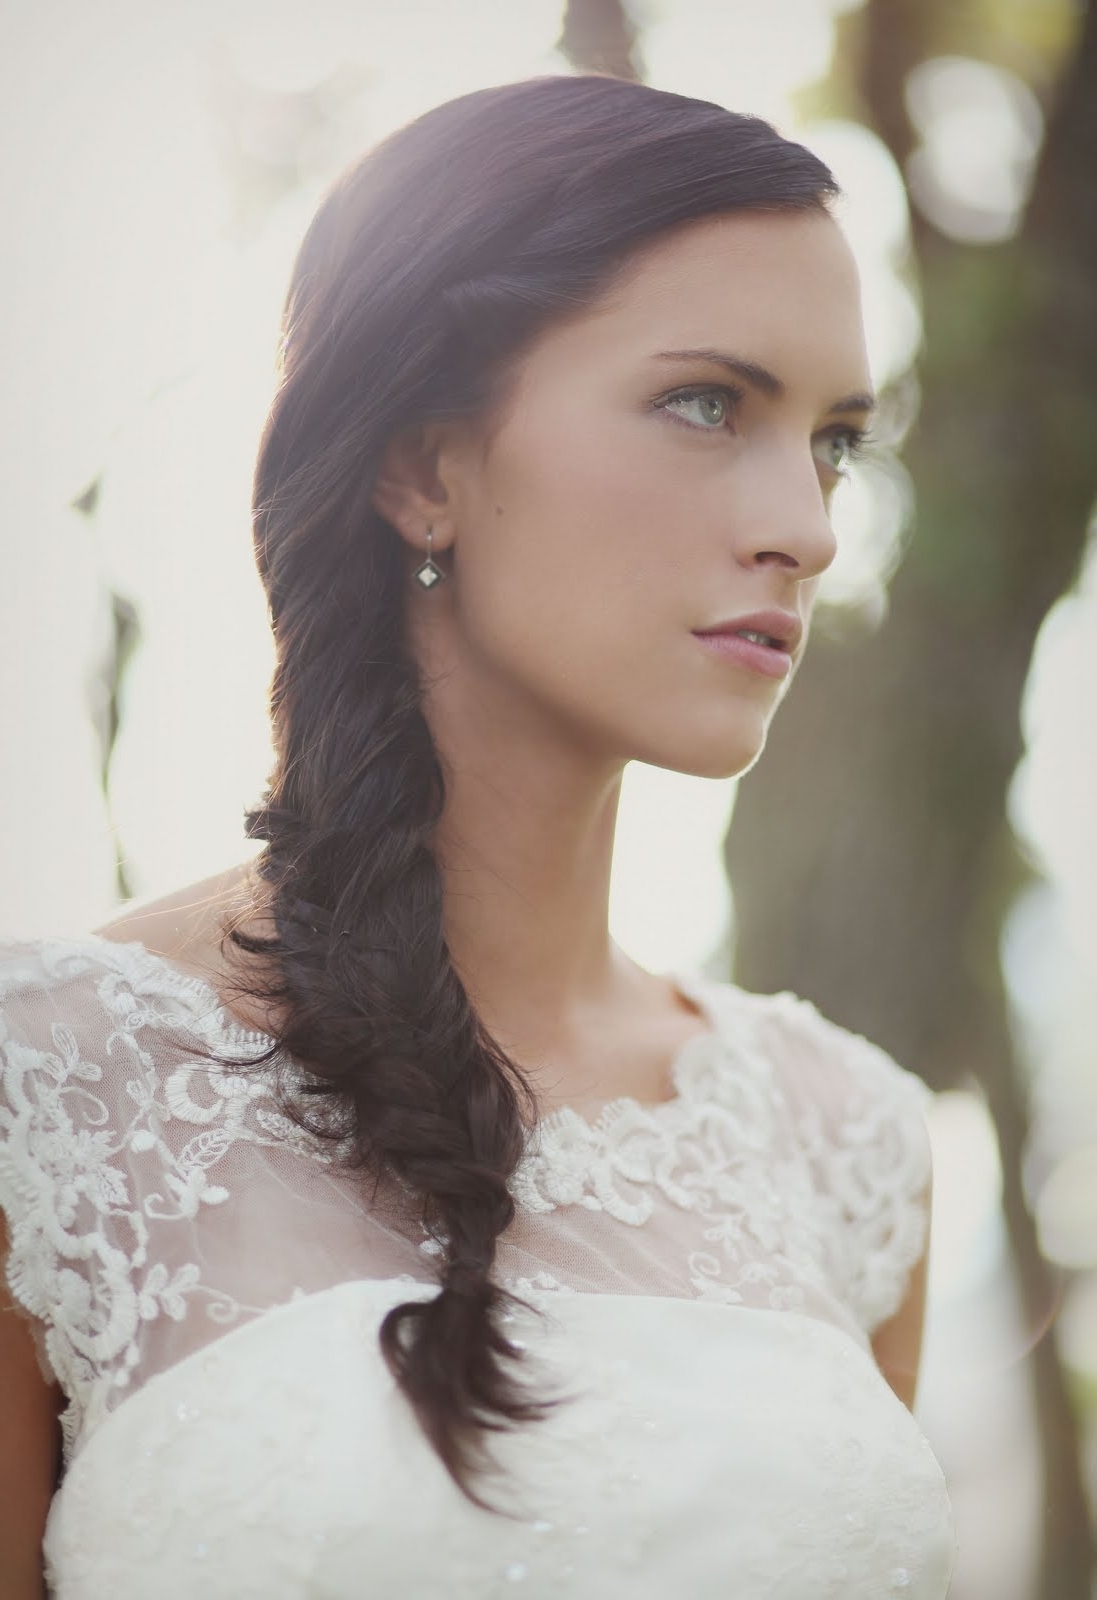 Widely Used Wedding Hairstyles Down For Thin Hair Pertaining To 10 Bridal Hairstyle Ideas For Fine Hair – Hair World Magazine (View 15 of 15)